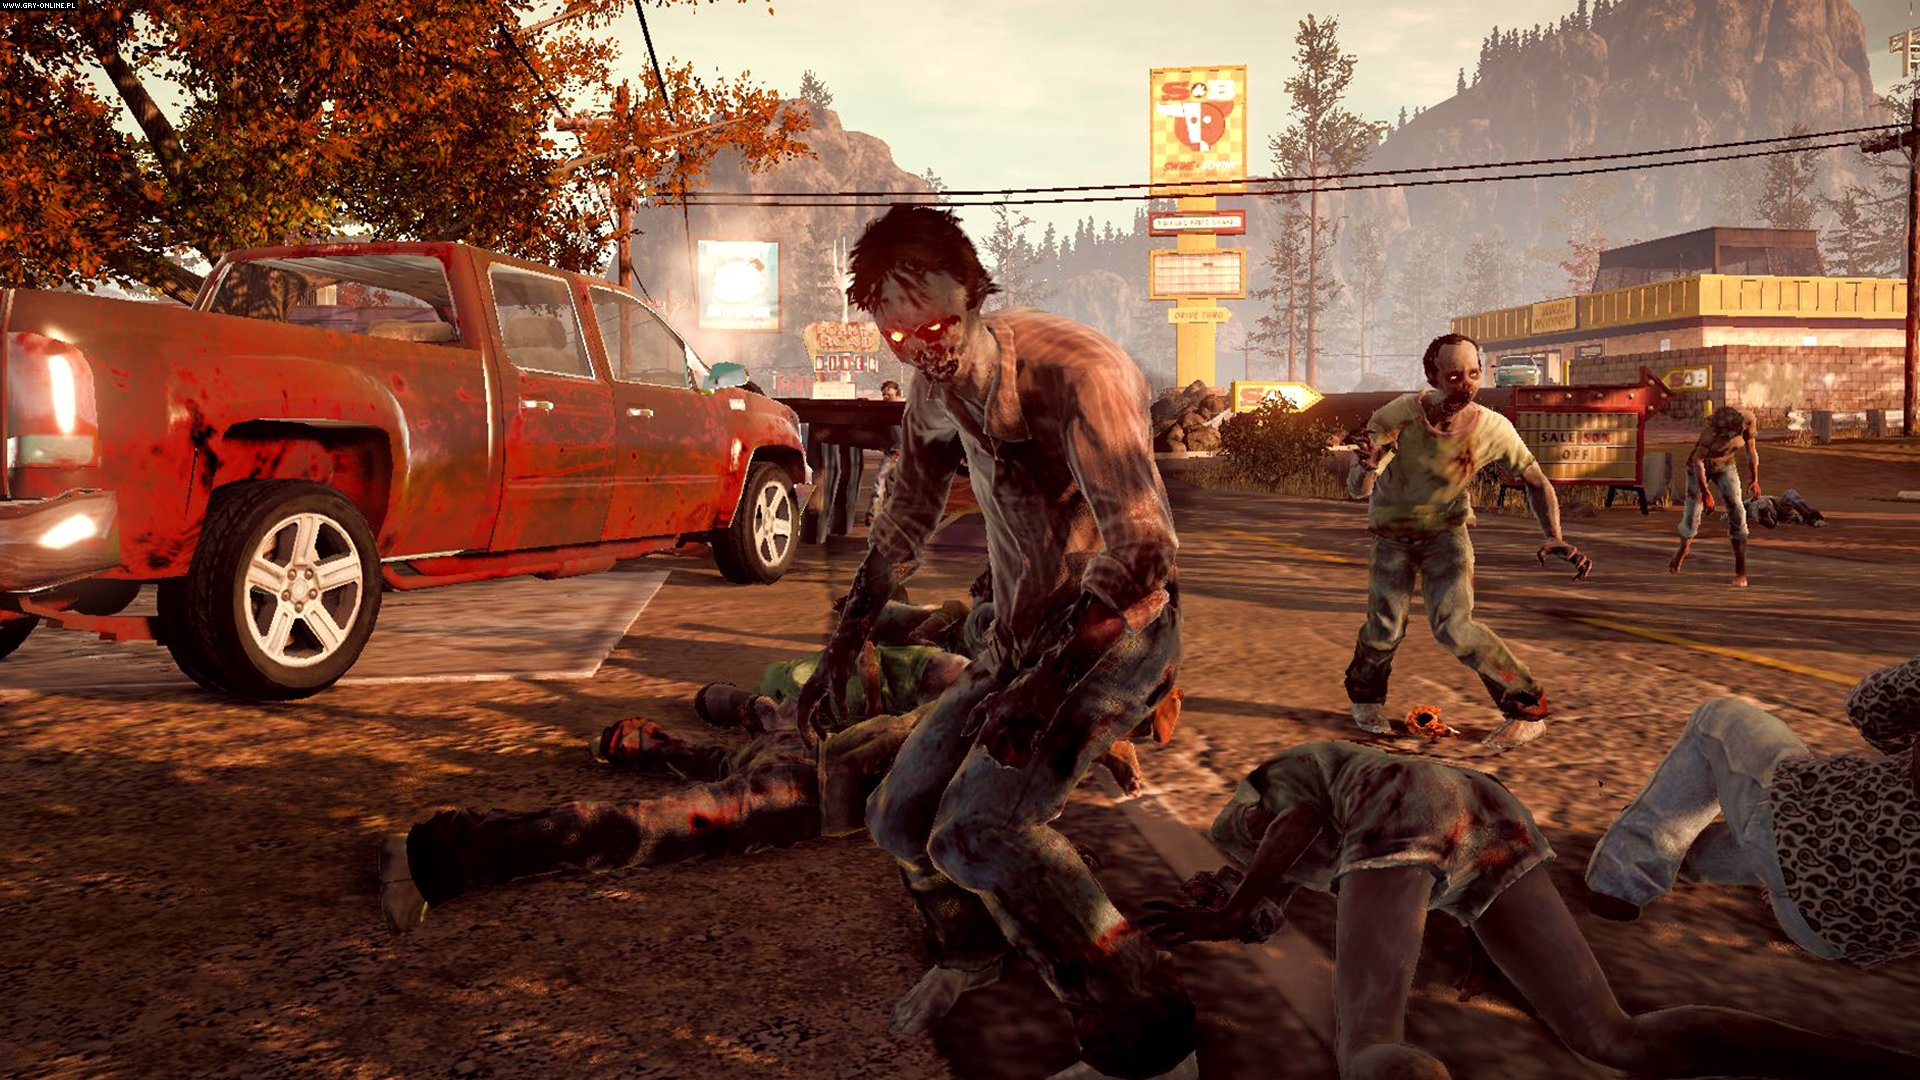 State of Decay: Year-One Survival Edition PC, XONE Gry Screen 1/16, Undead Labs